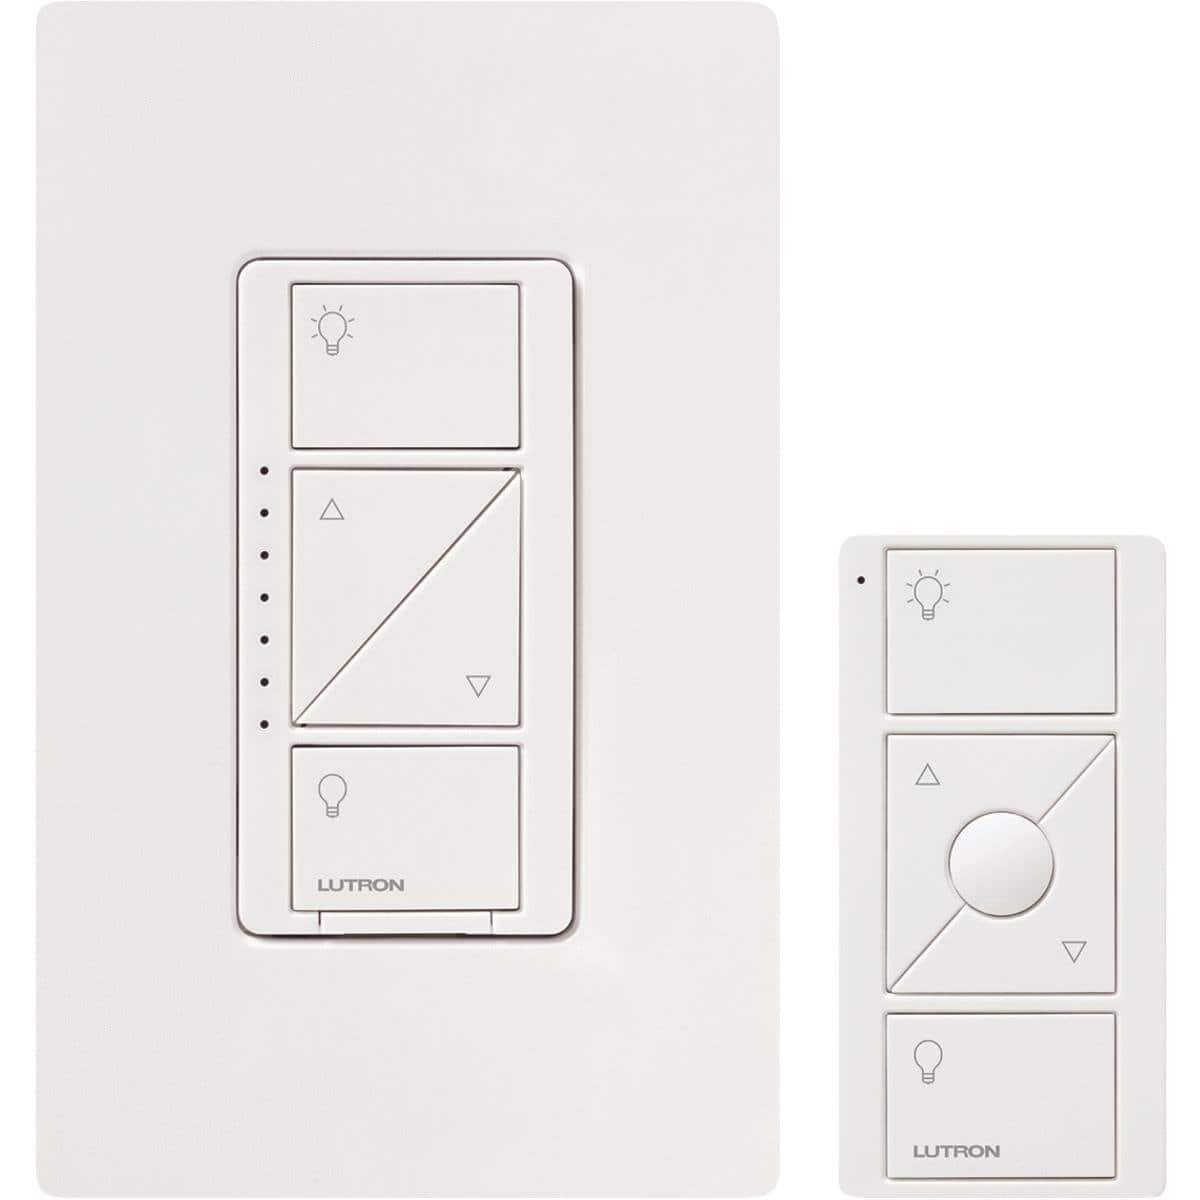 Lutron Caseta Smart Lighting Dimmer Switch and Remote Kit @Amazon $39.1